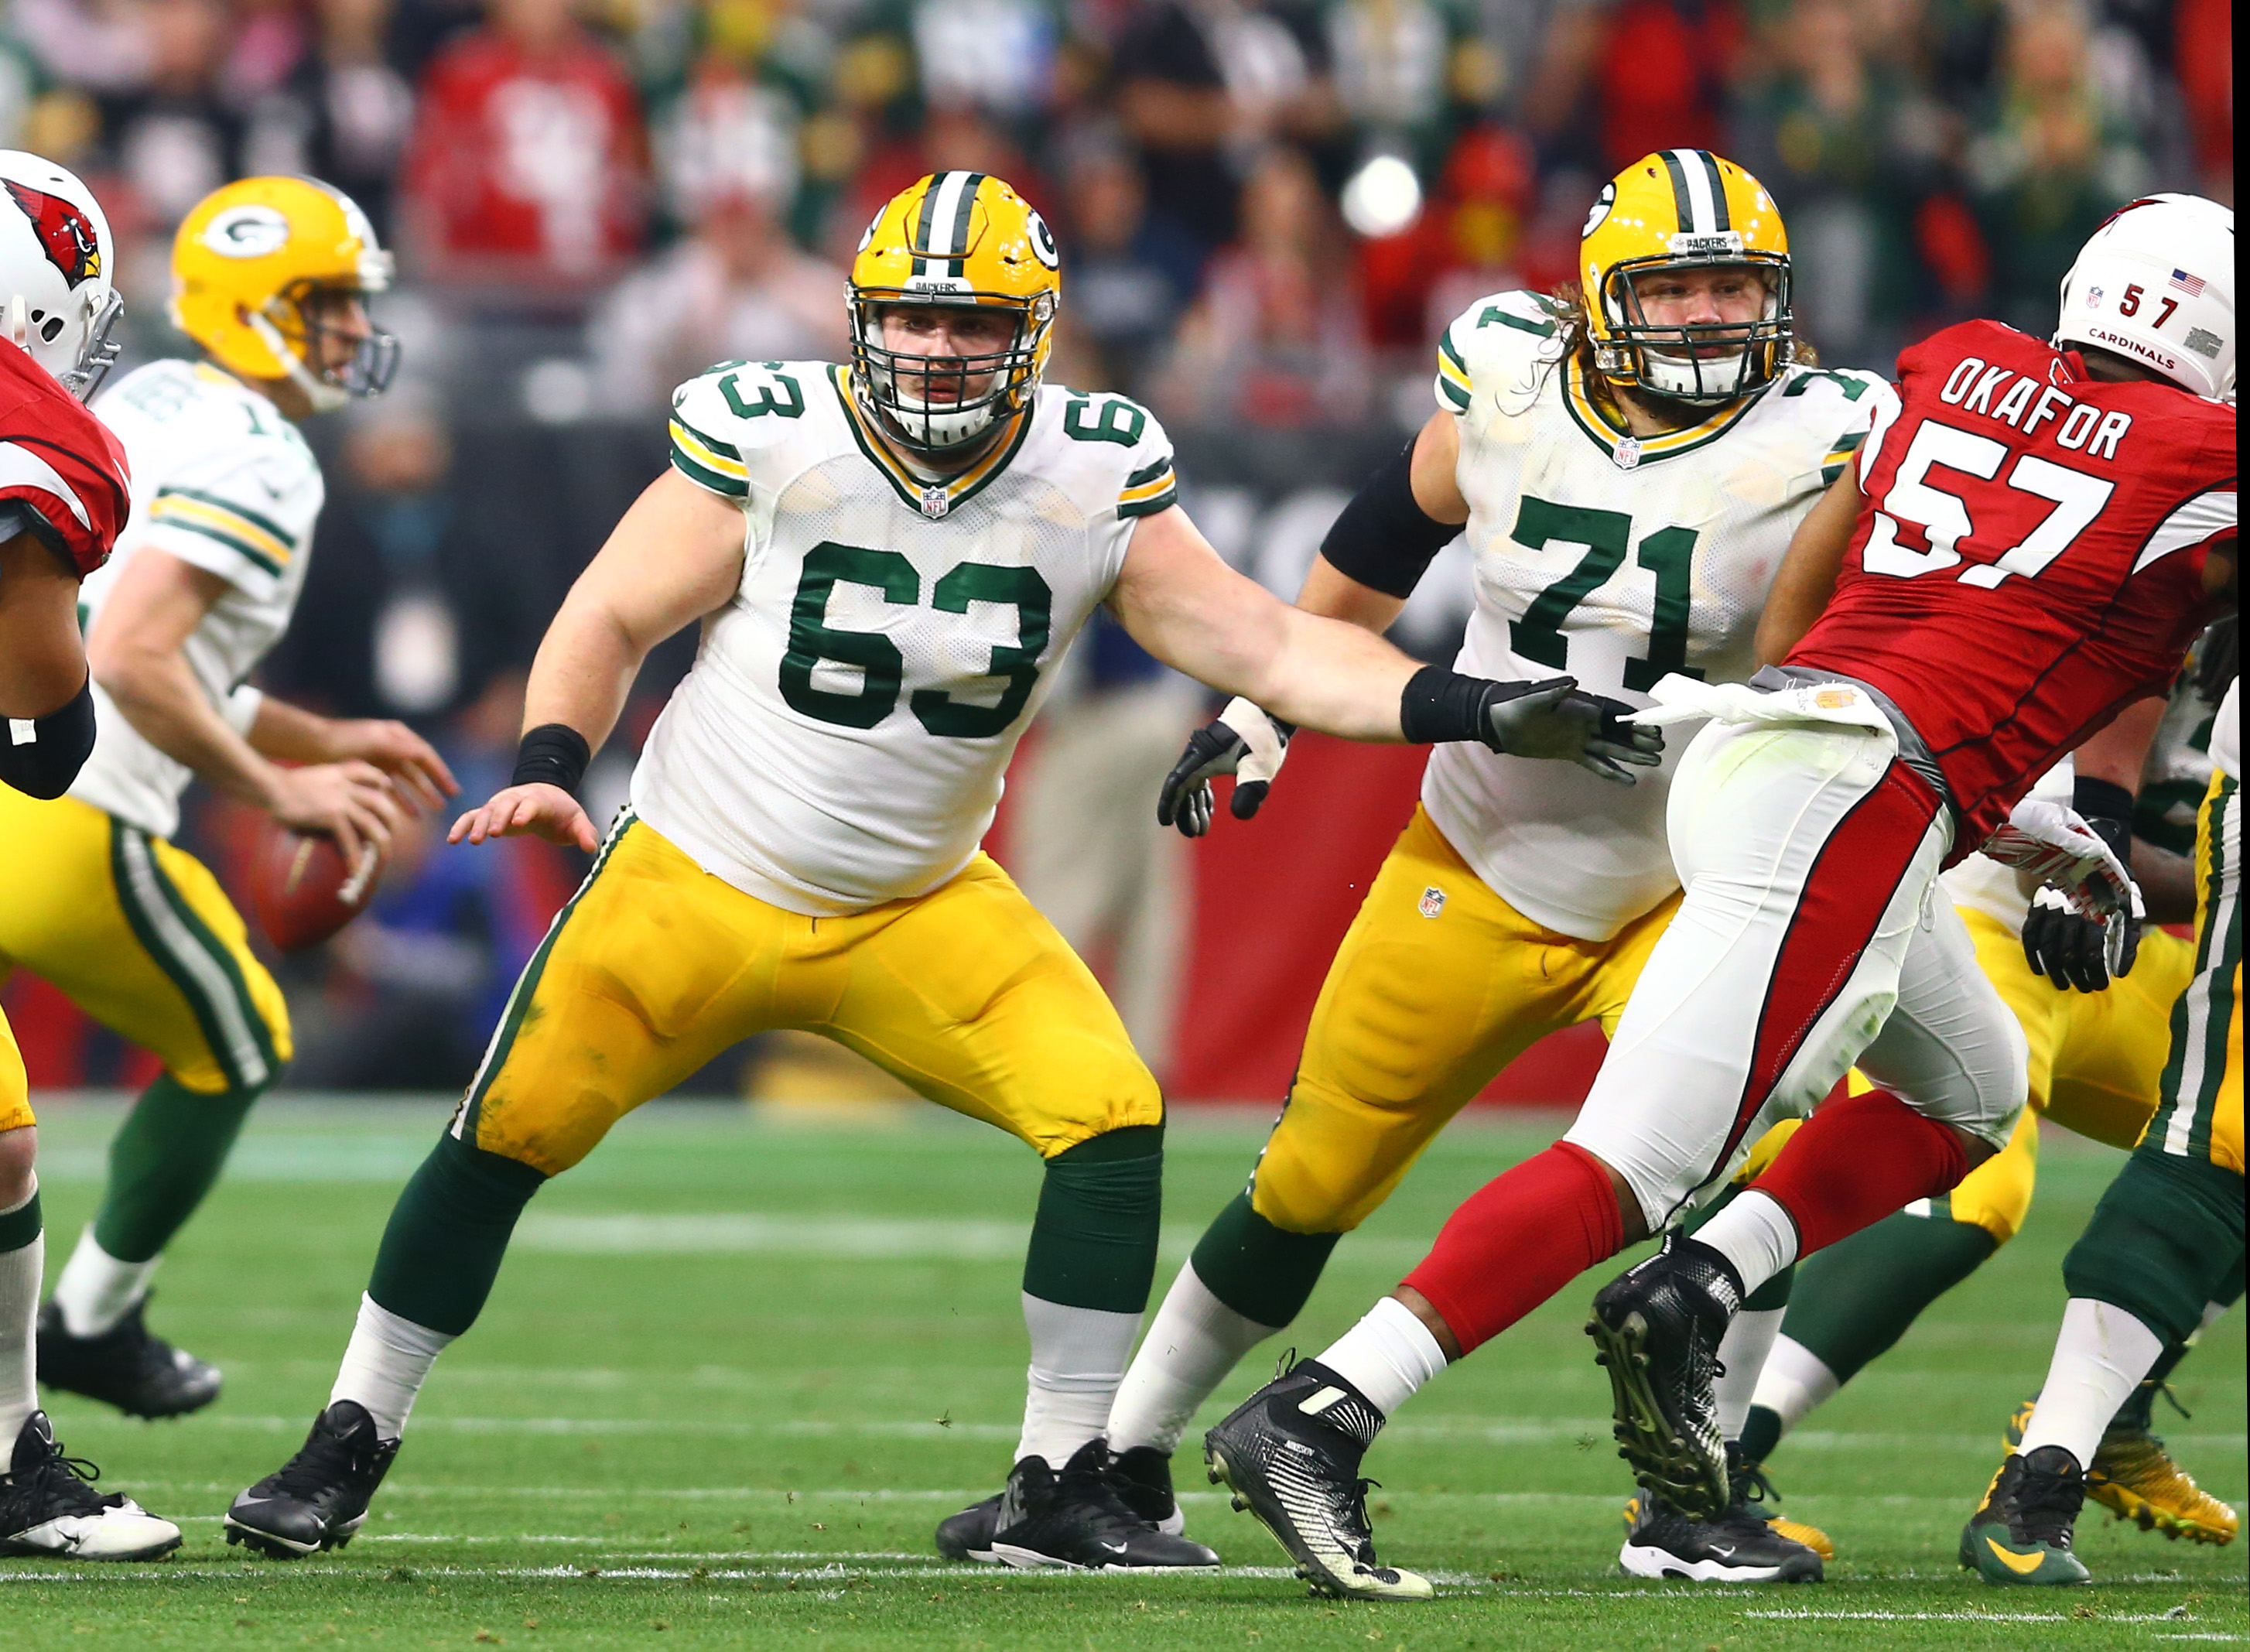 Packers center Corey Linsley comes full circle after injury